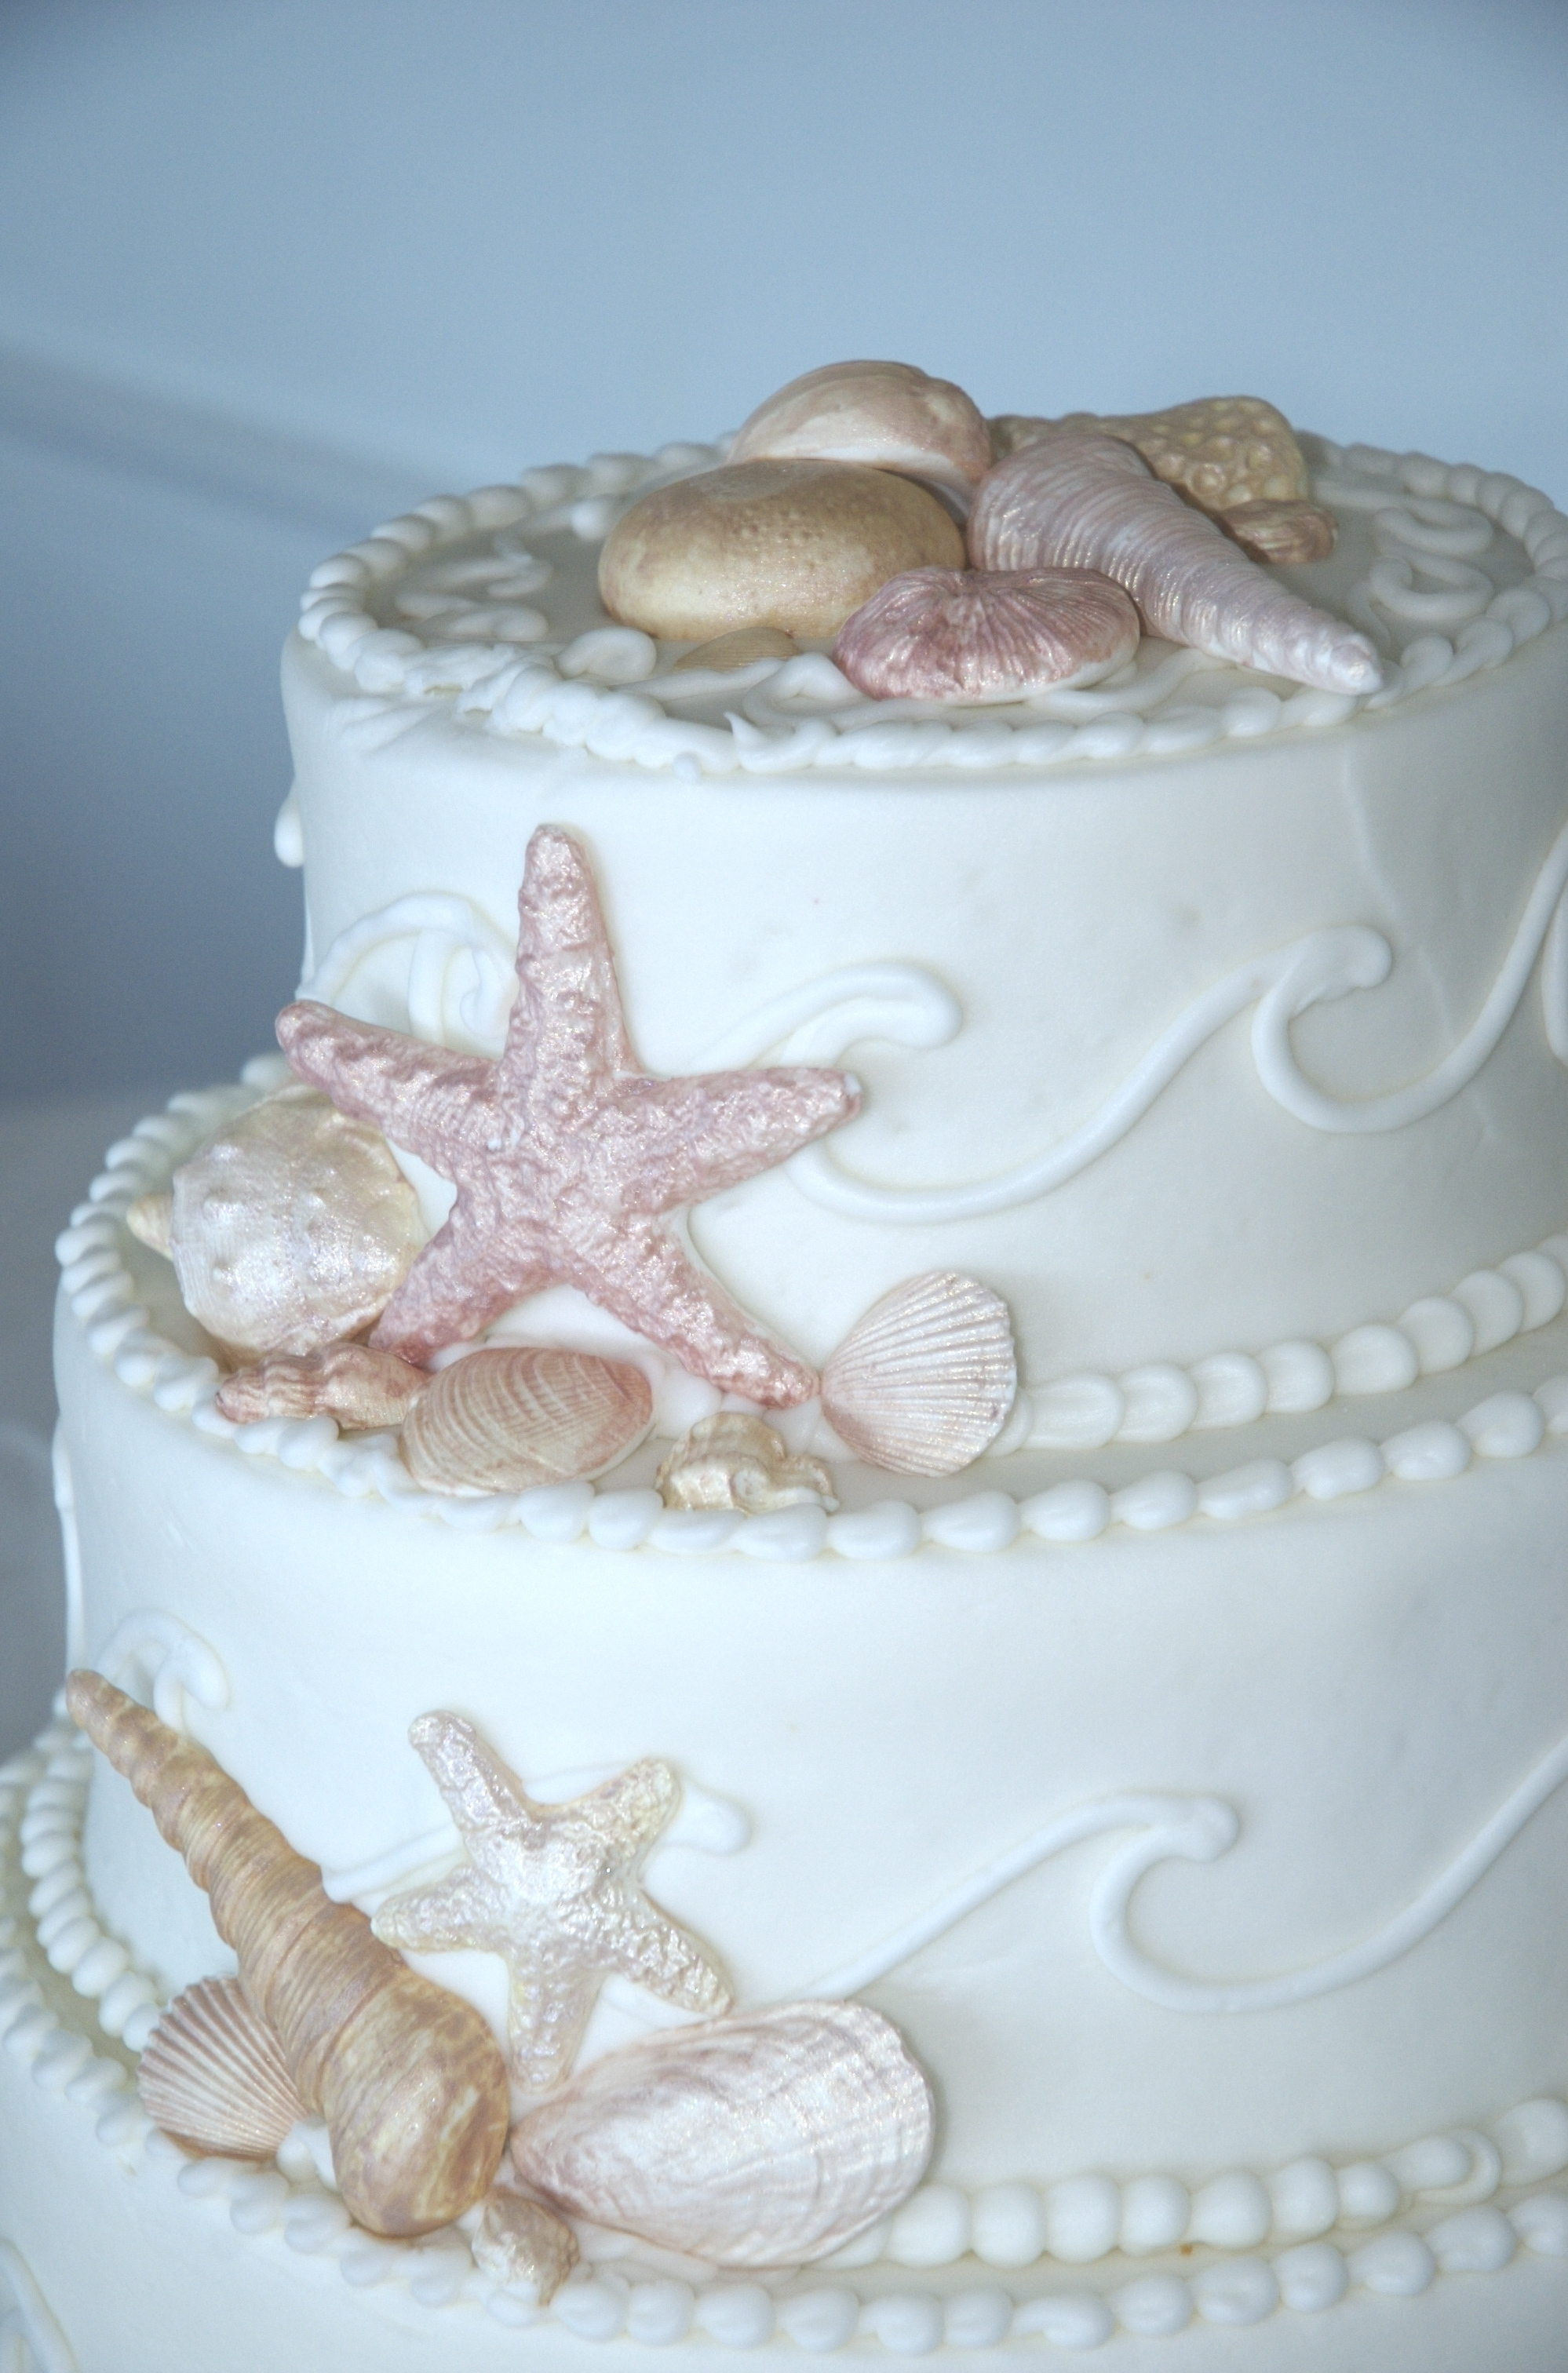 Reception, Flowers & Decor, Cakes, cake, Wedding, Island, Tybee island wedding, Tybee